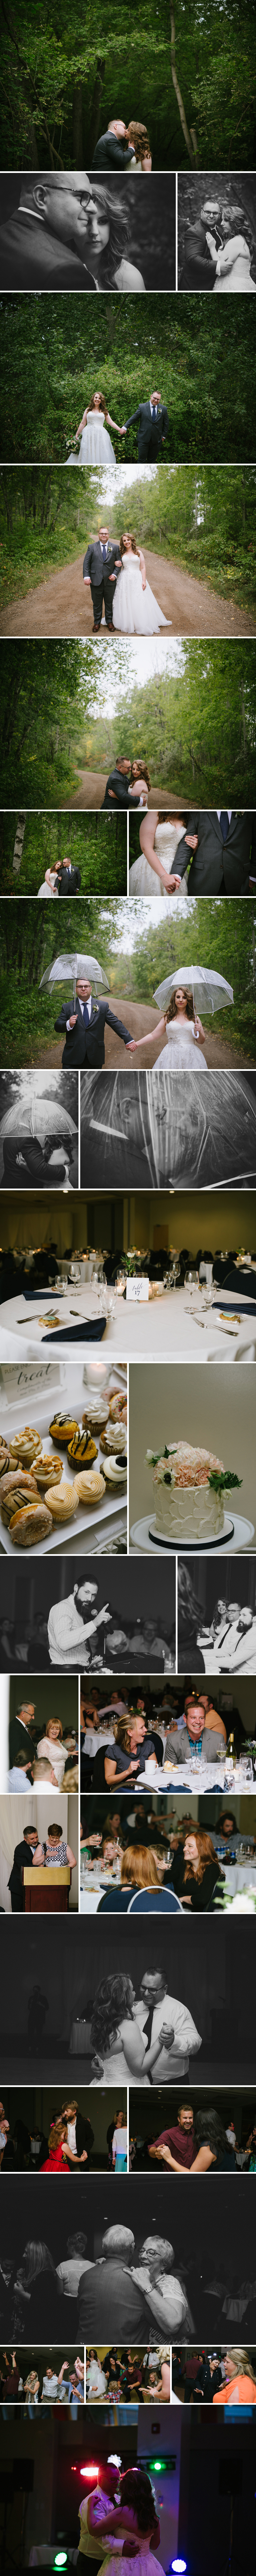 brittanyandtrevor_blog_wedding_2017_bbcollective_edmonton_yeg_married